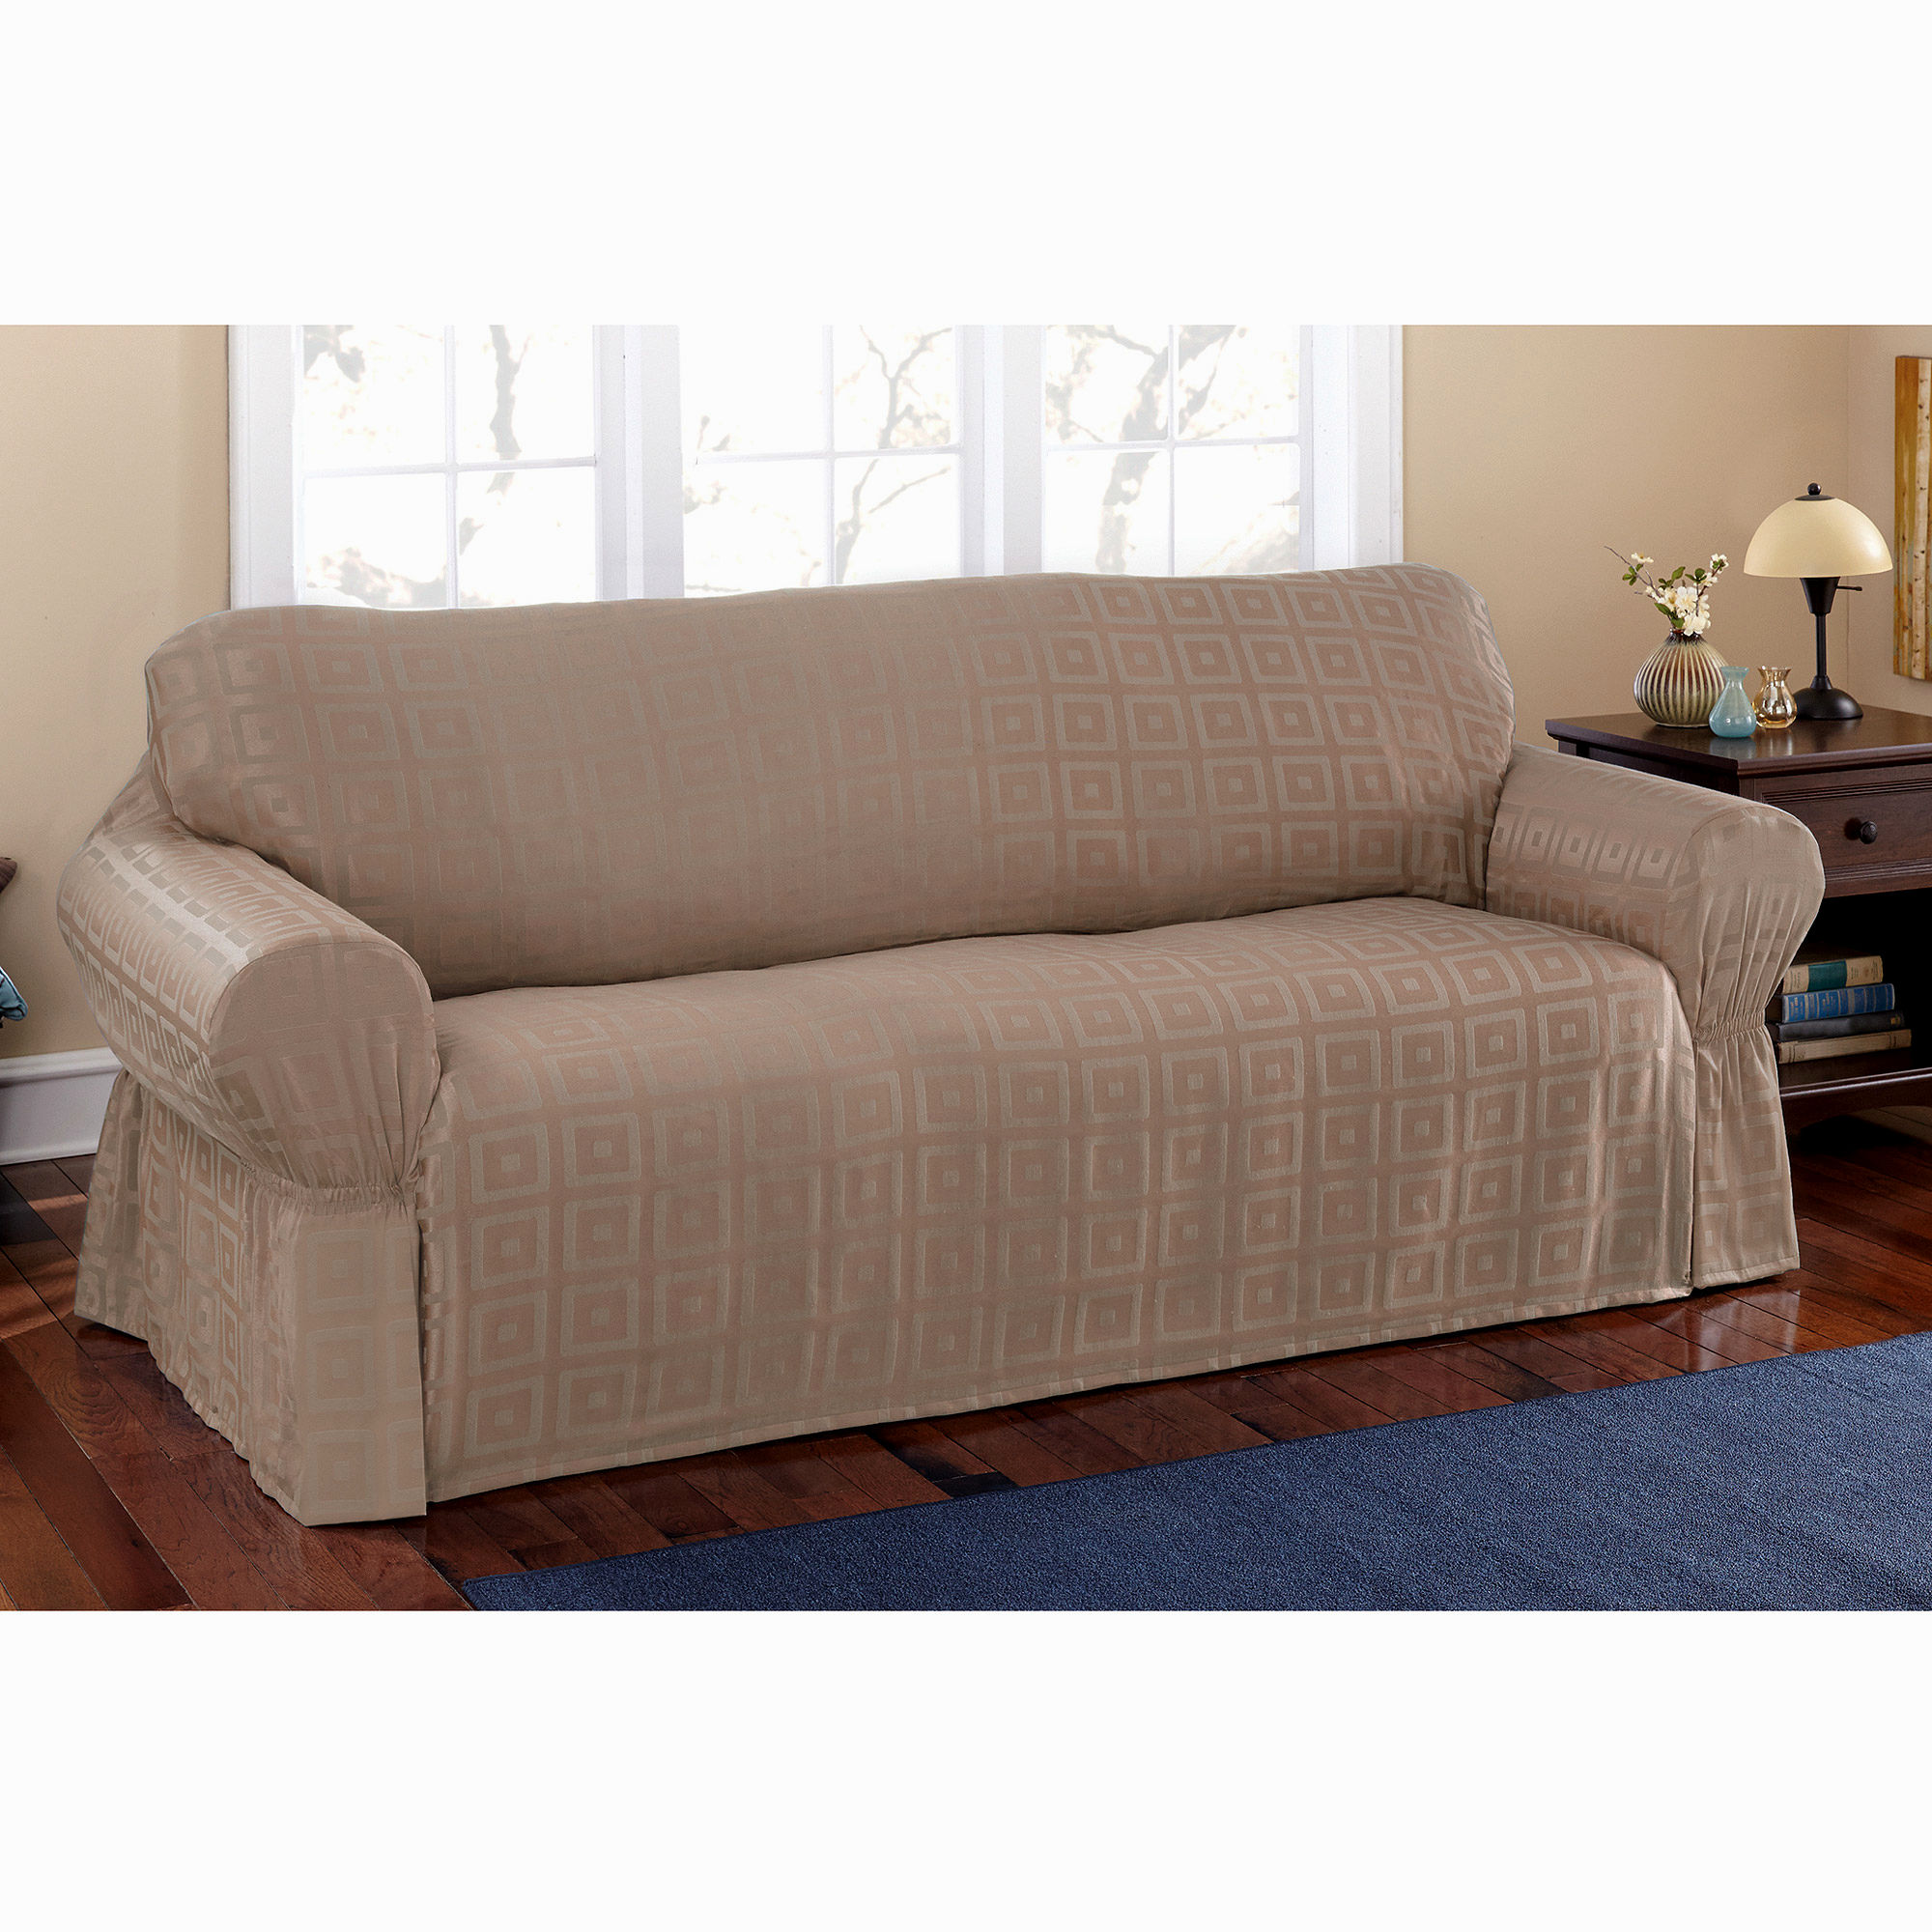 superb sure fit slipcovers for sofas model-Excellent Sure Fit Slipcovers for sofas Inspiration